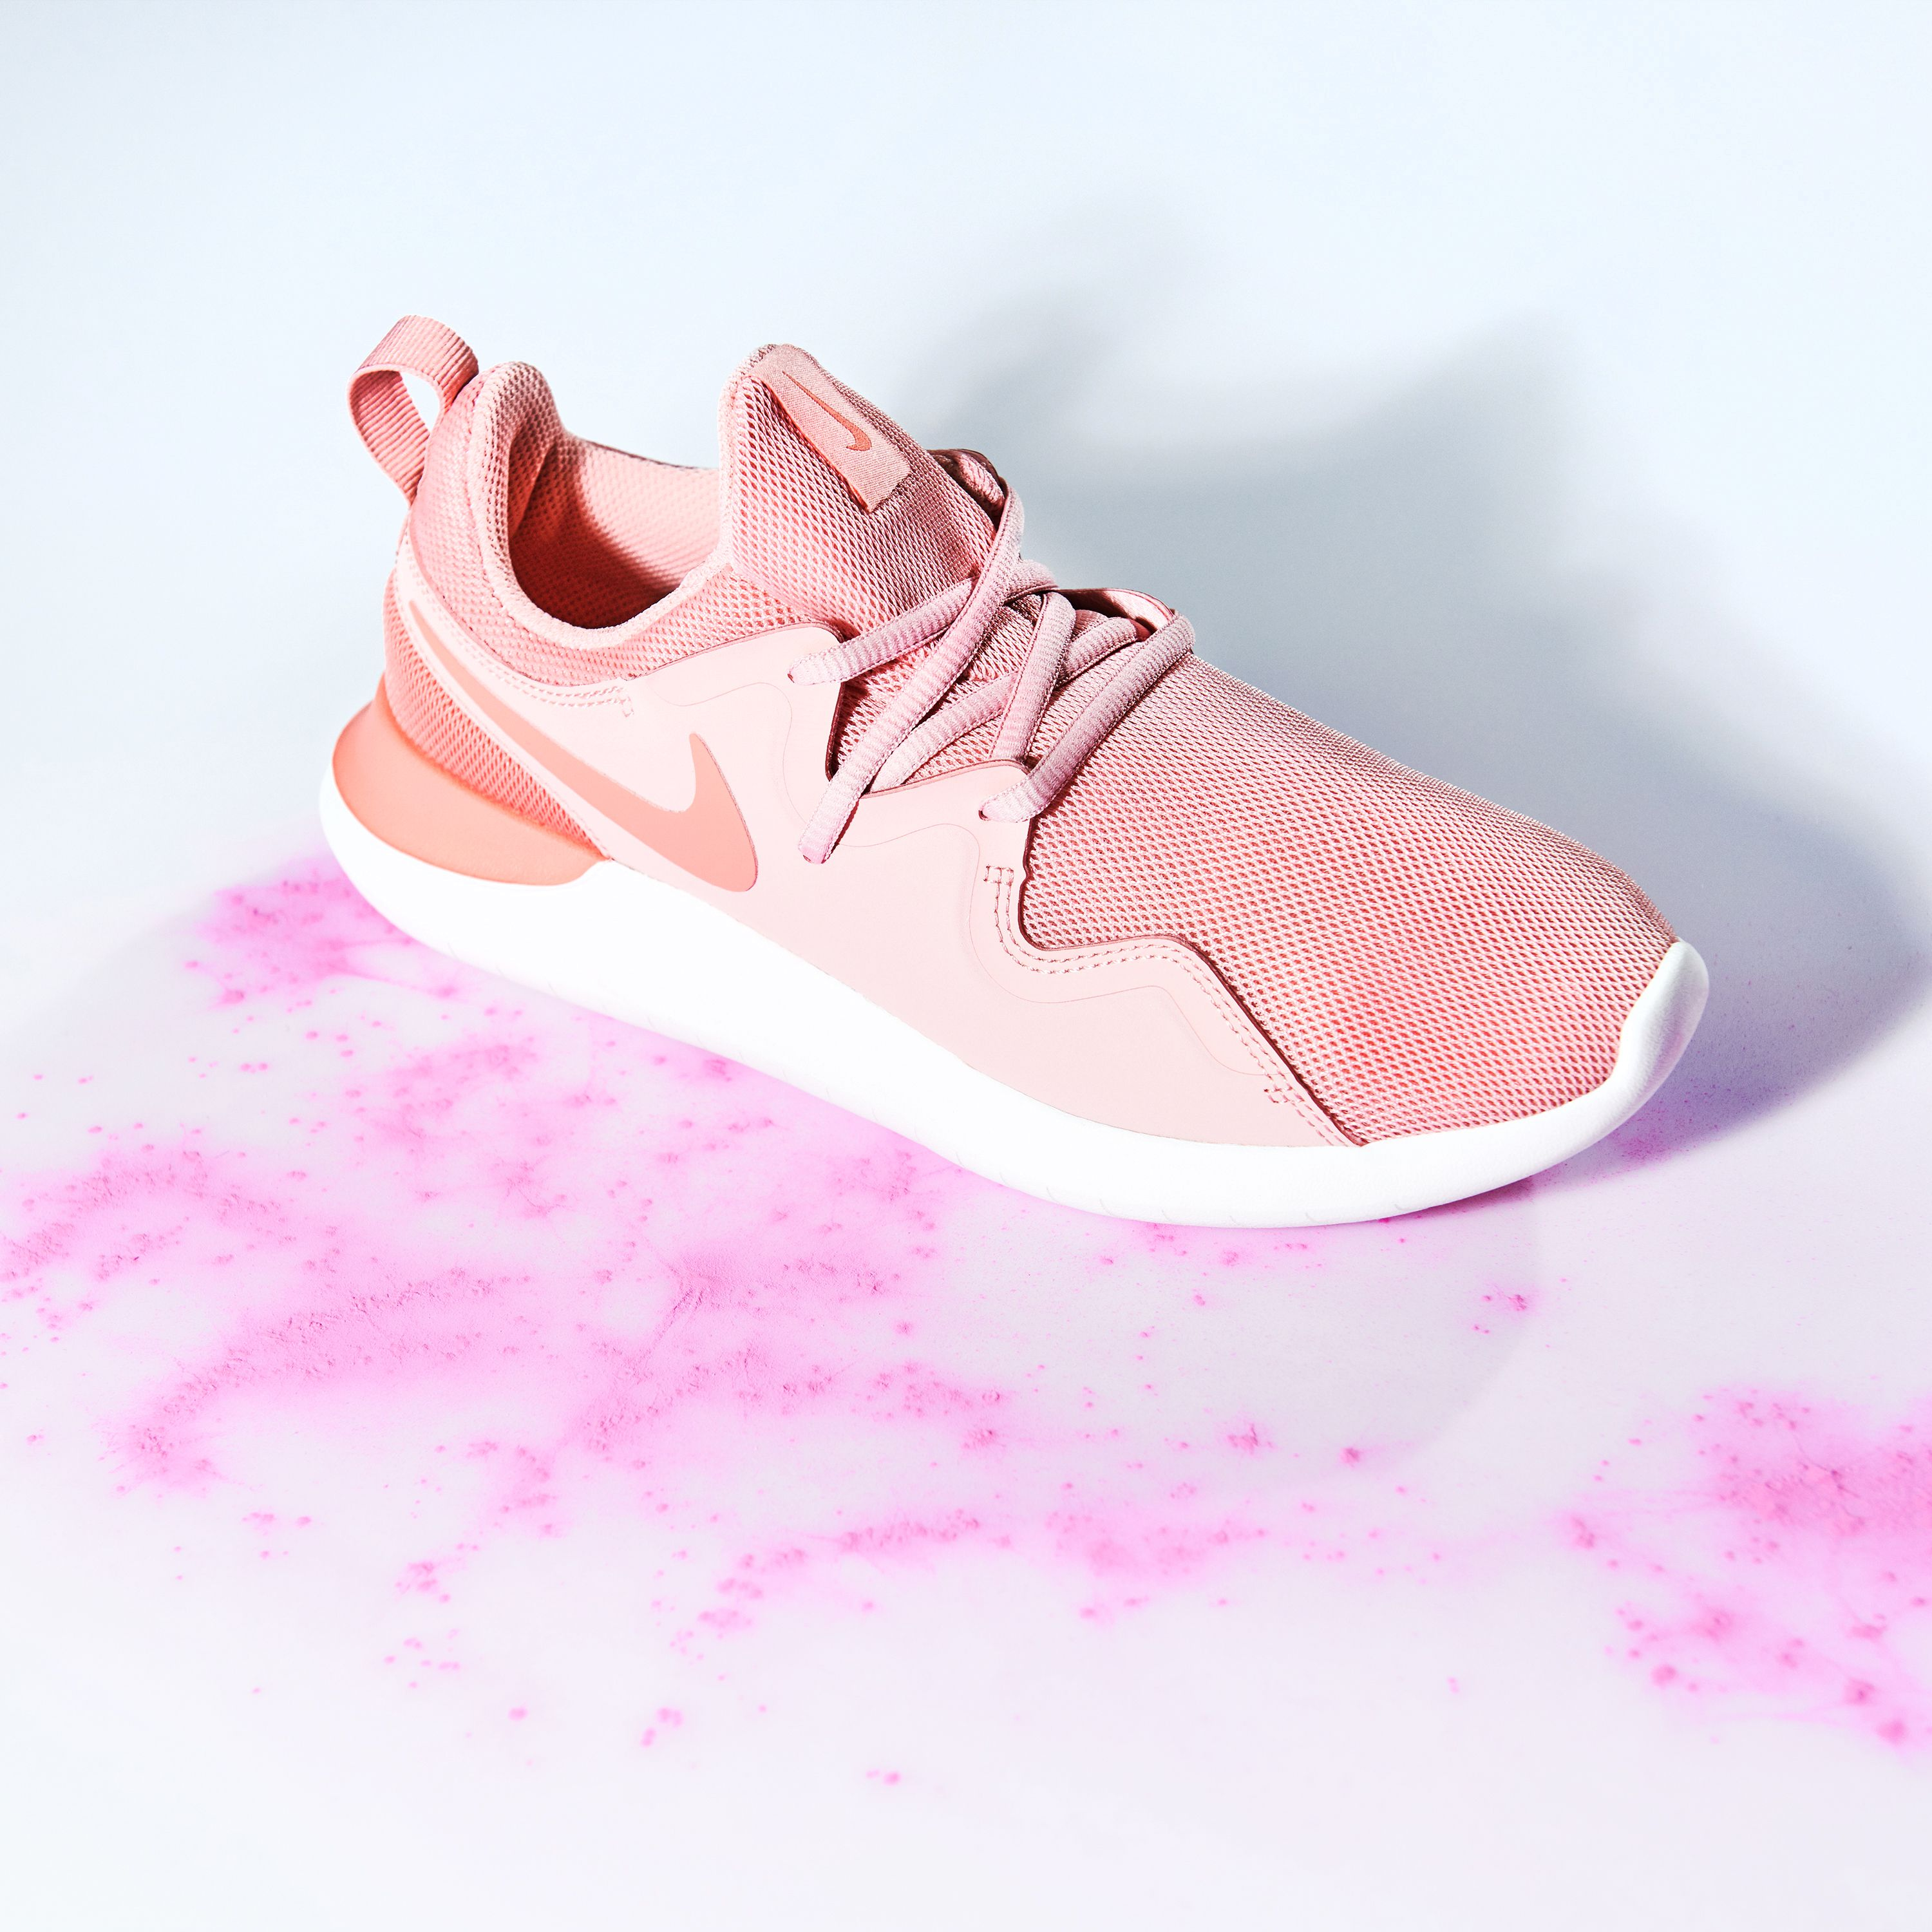 Abrumar santo Barcelona  Feel pretty in pink with the Nike Tessen trainers | Nice shoes ...